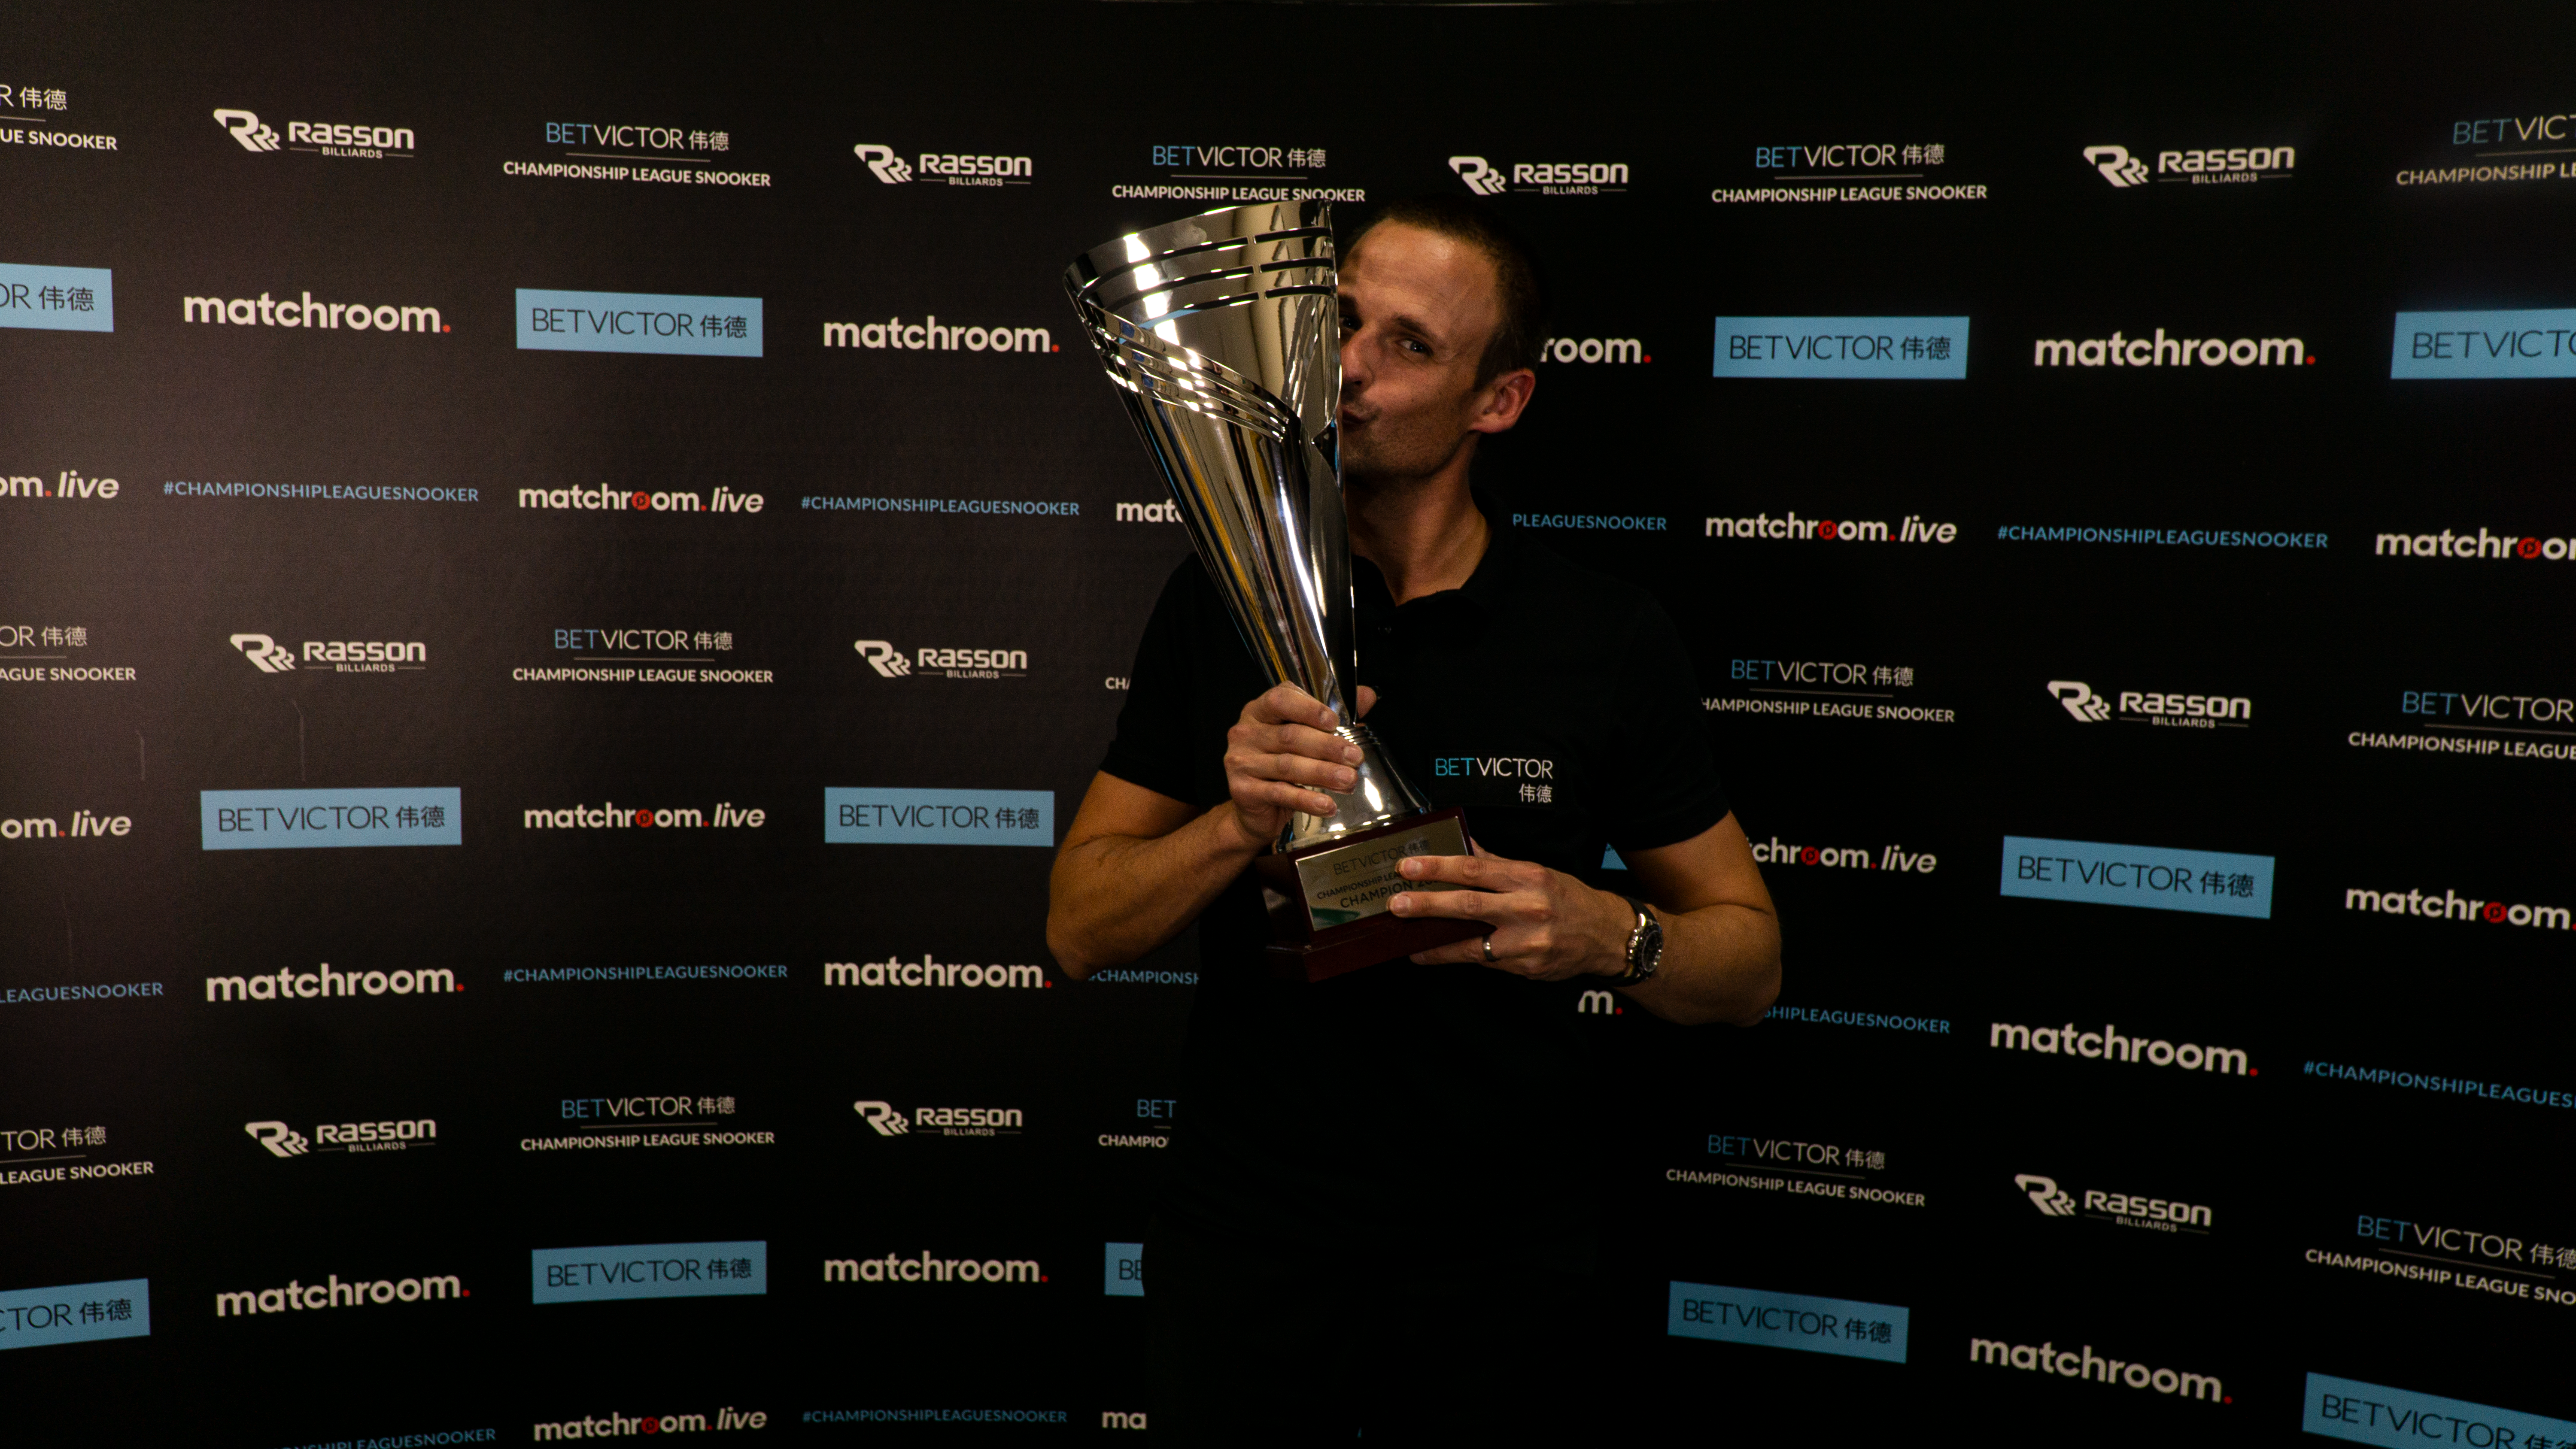 David Gilbert clinches BetVictor Championship League Snooker title